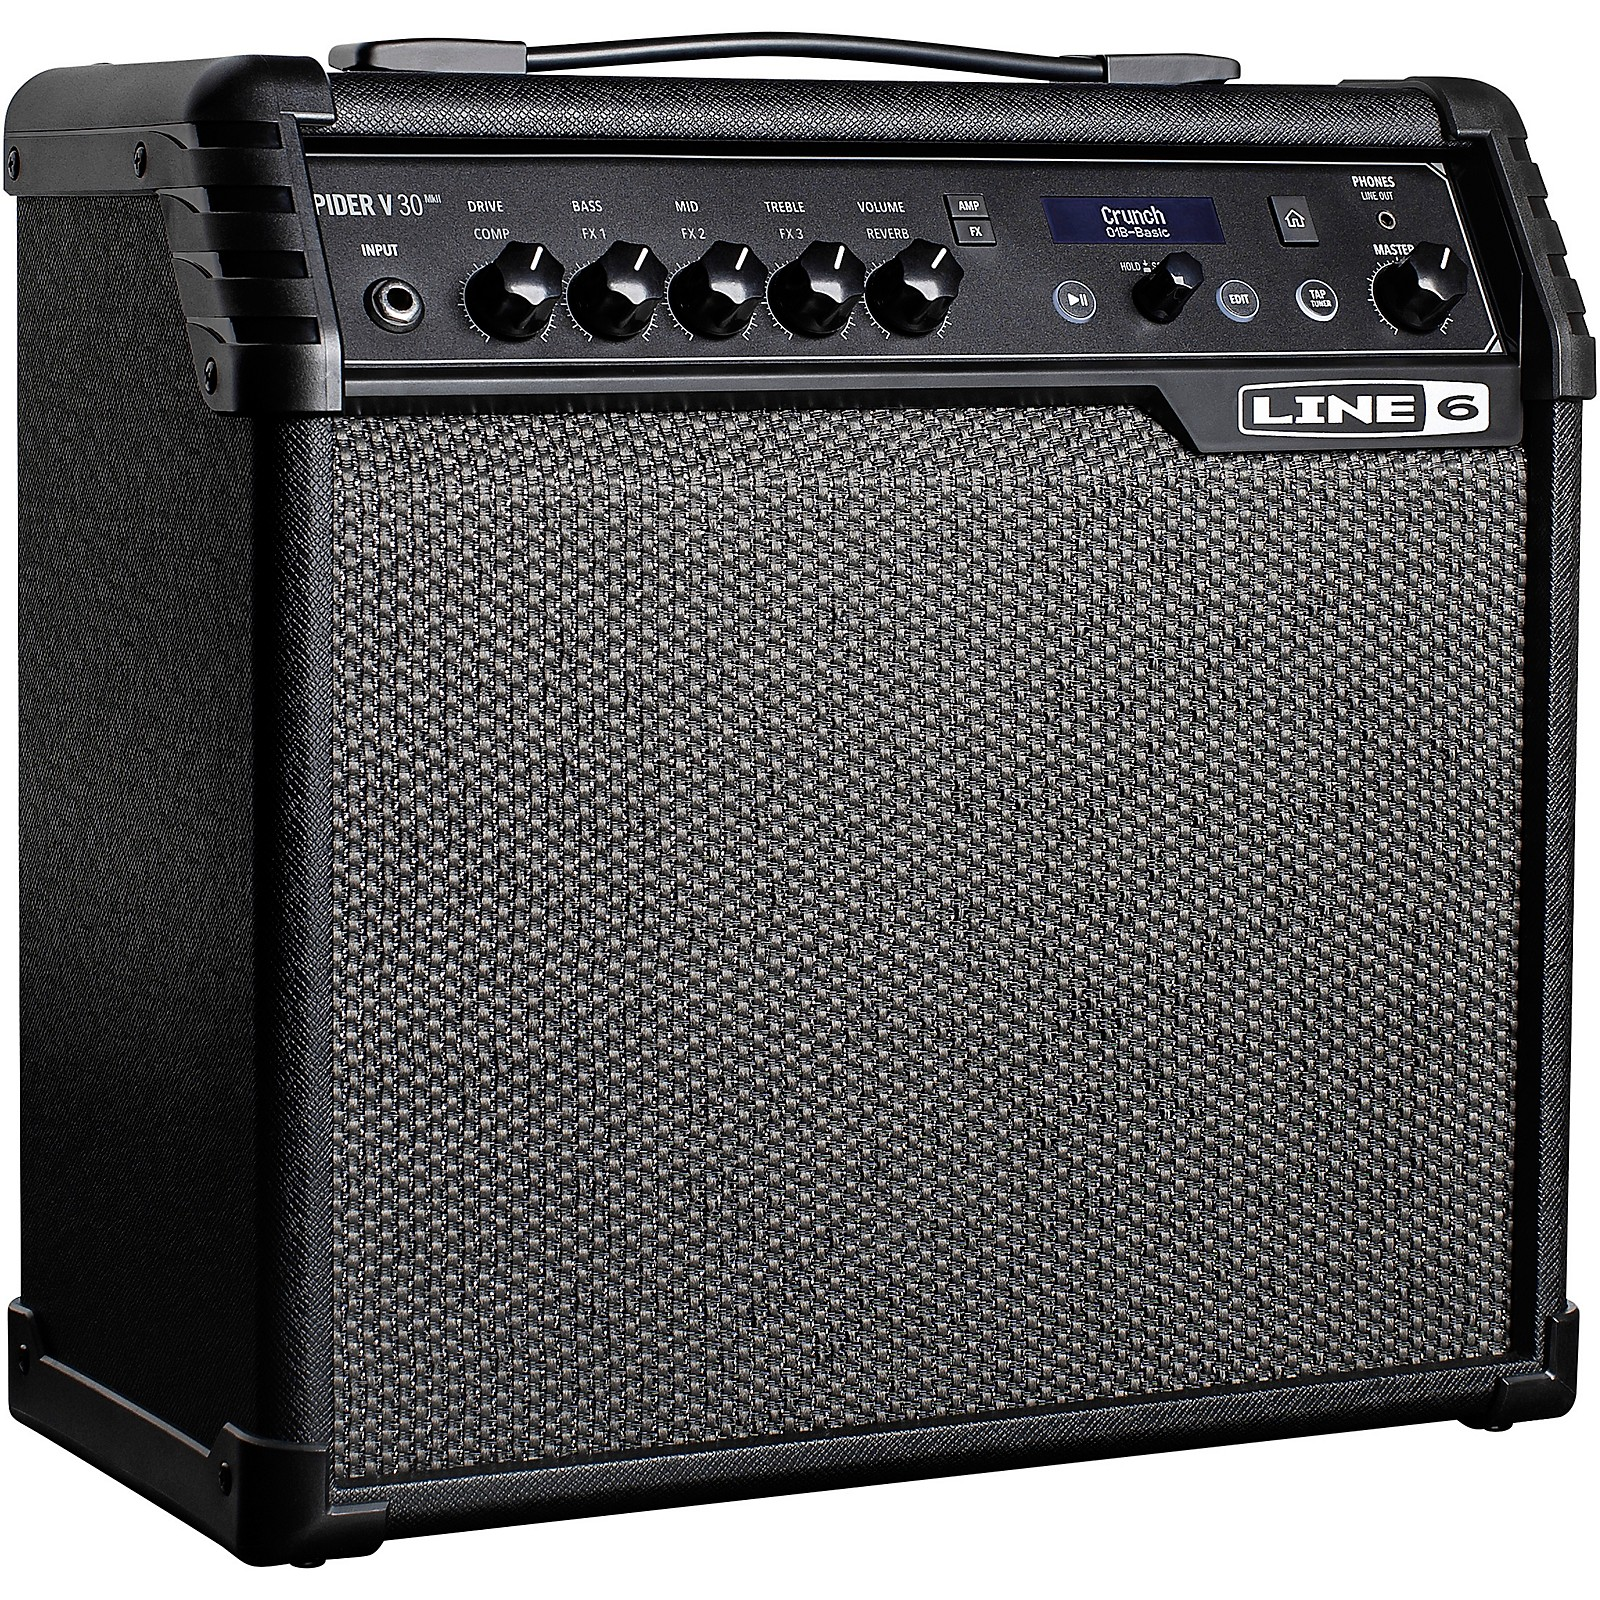 Line 6 Spider V 30 MKII 30W 1x8 Guitar Combo Amp